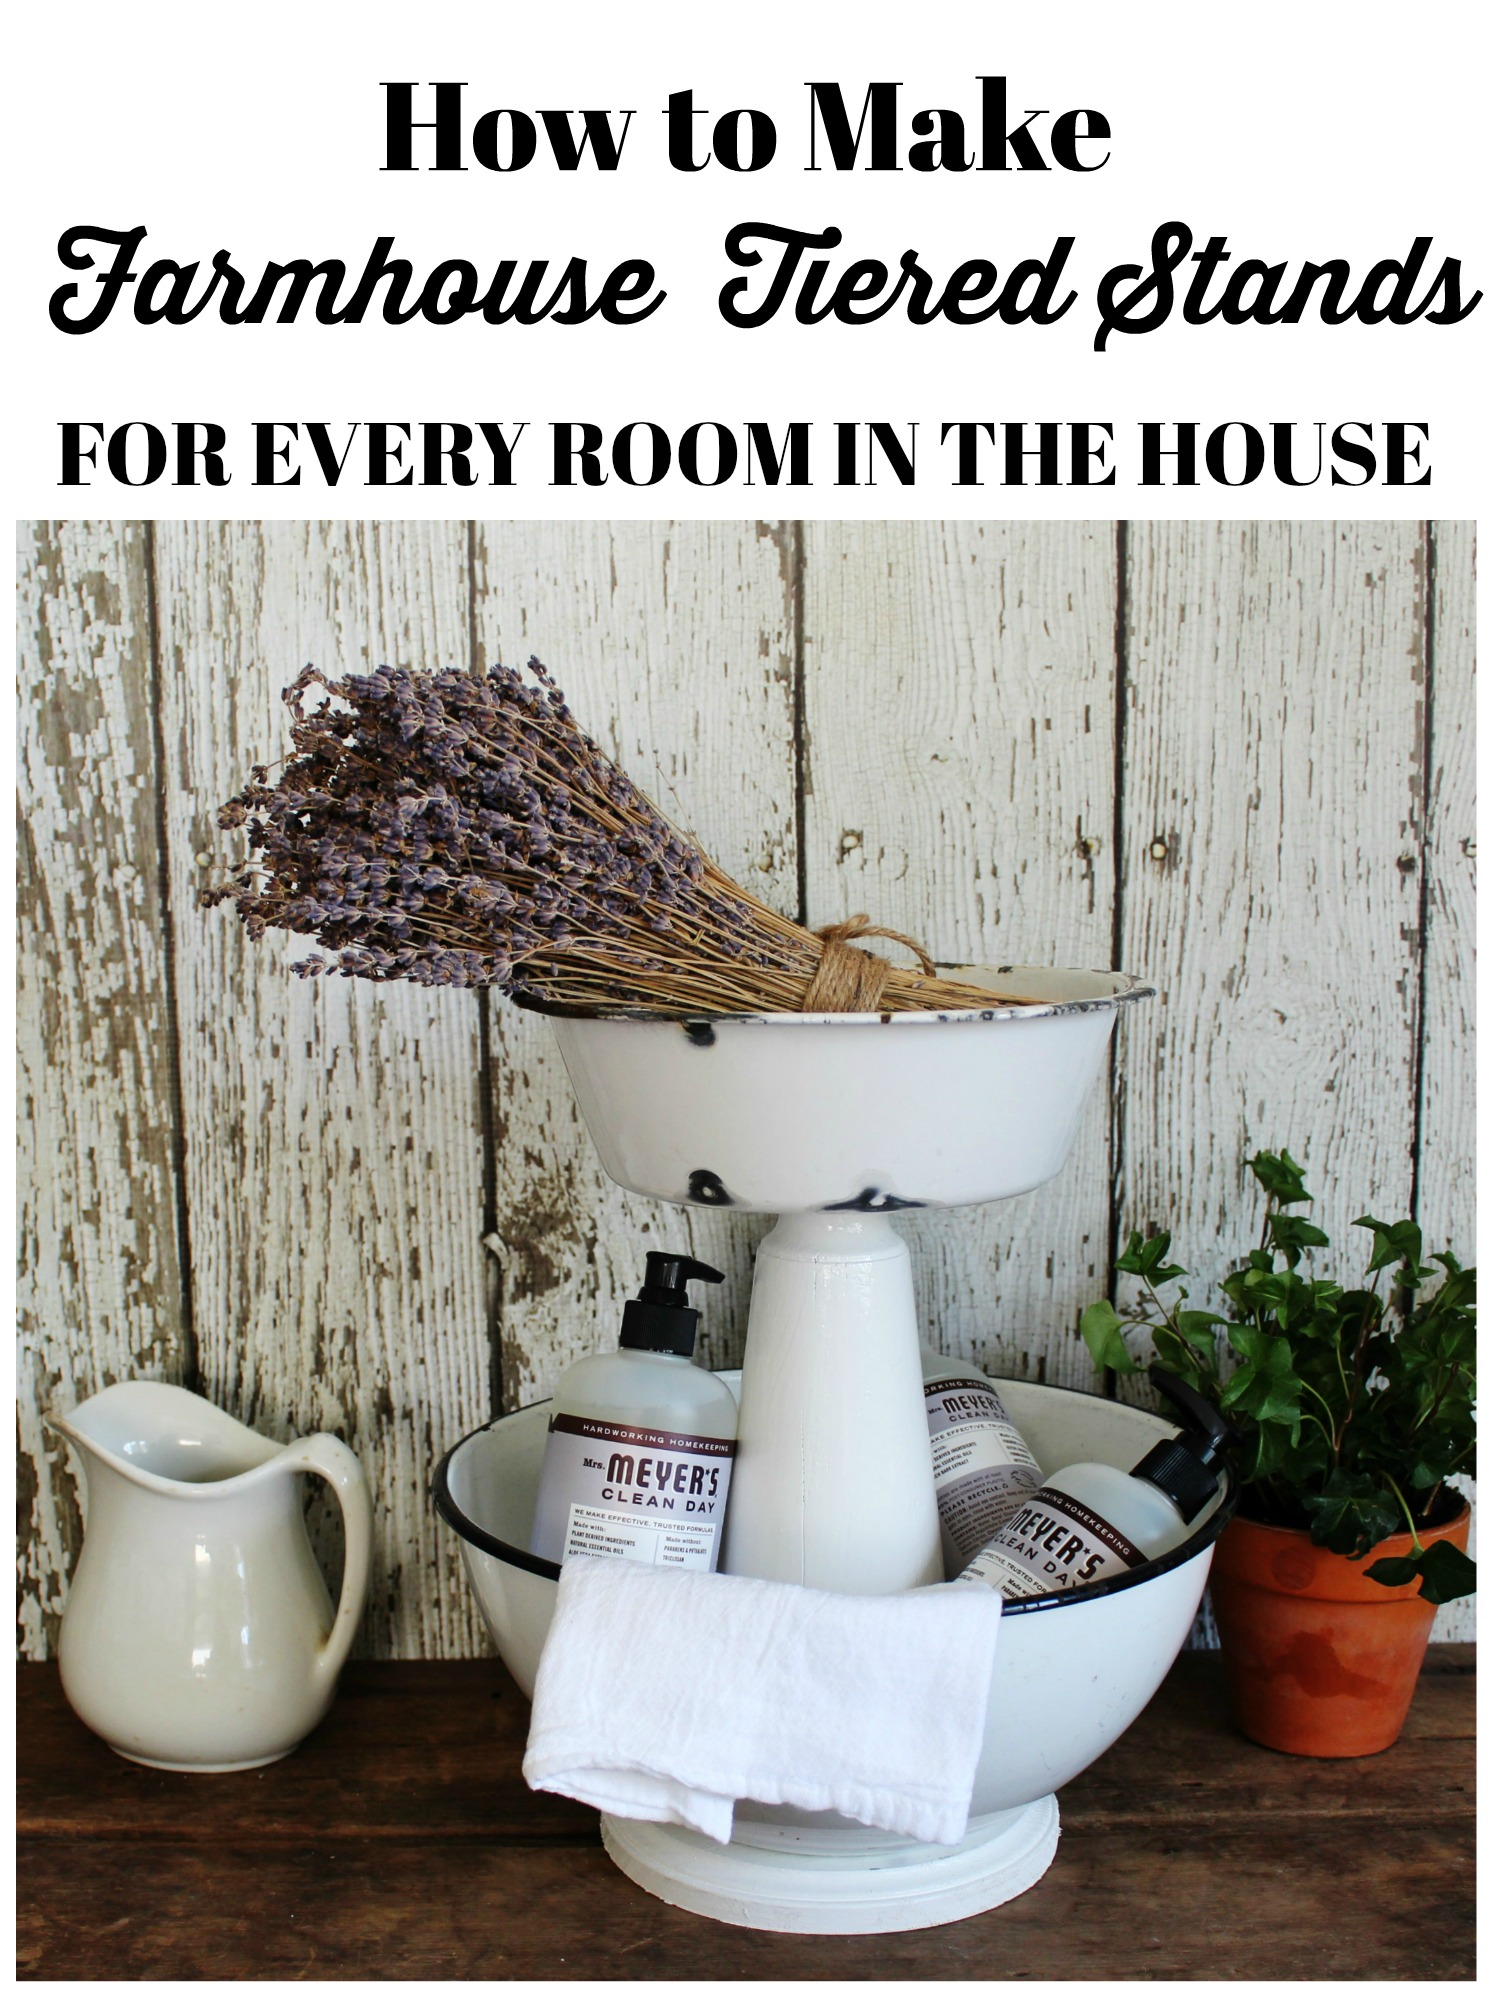 How to make Farmhouse Style Tiered Stands for the kitchen, bathroom and laundry room | www.knickoftime.net